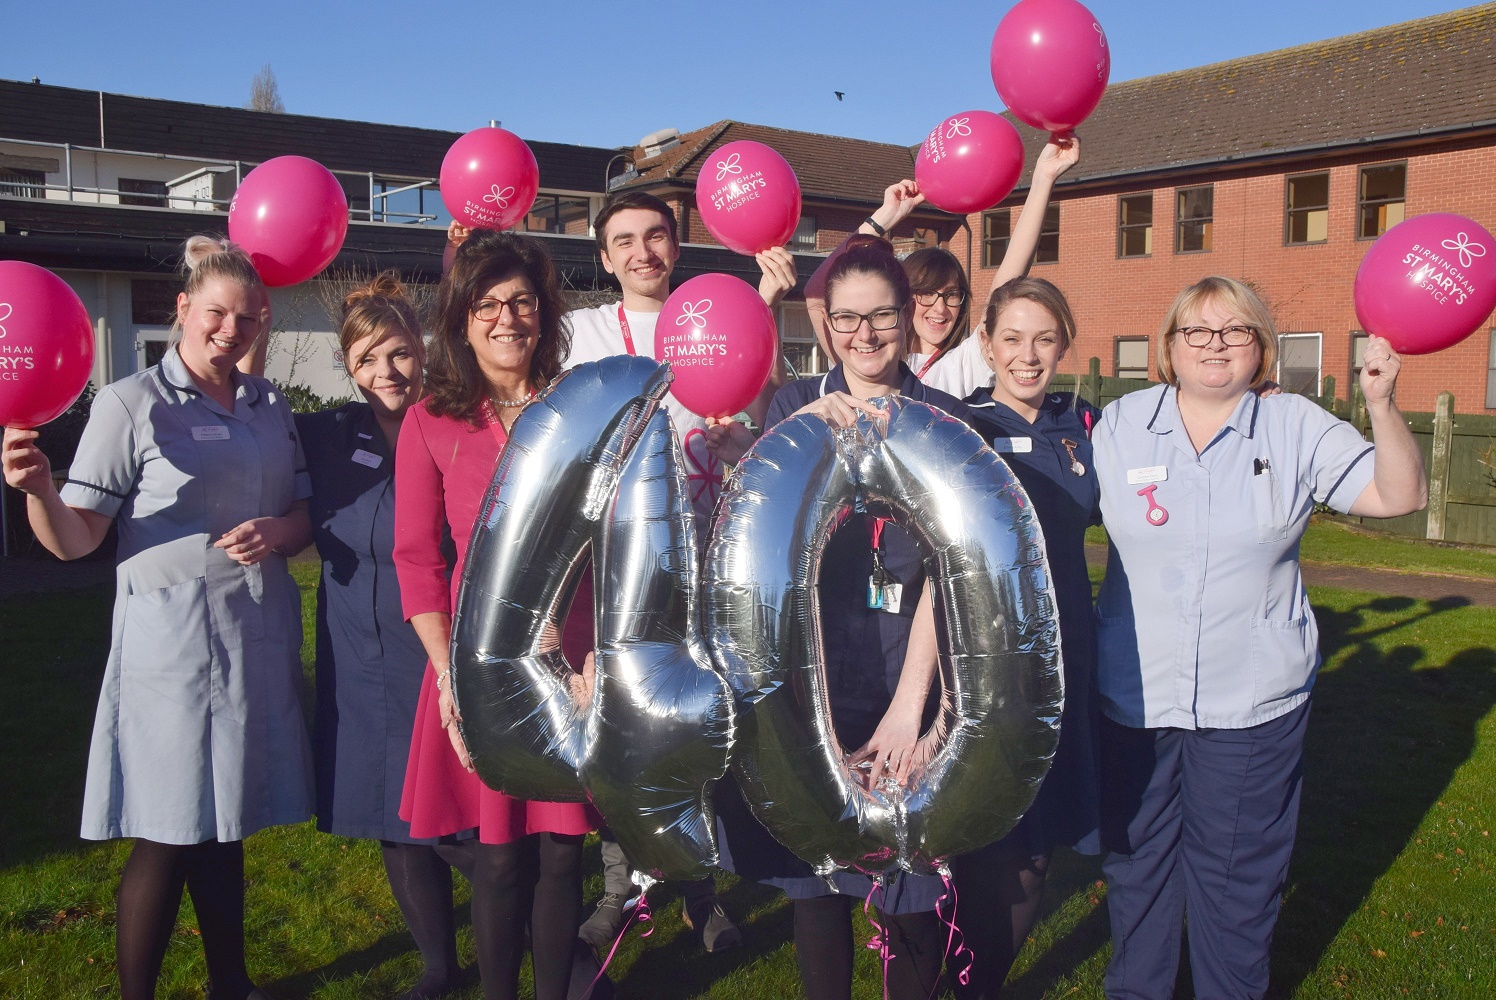 The Midlands' oldest hospice celebrates 40th anniversary